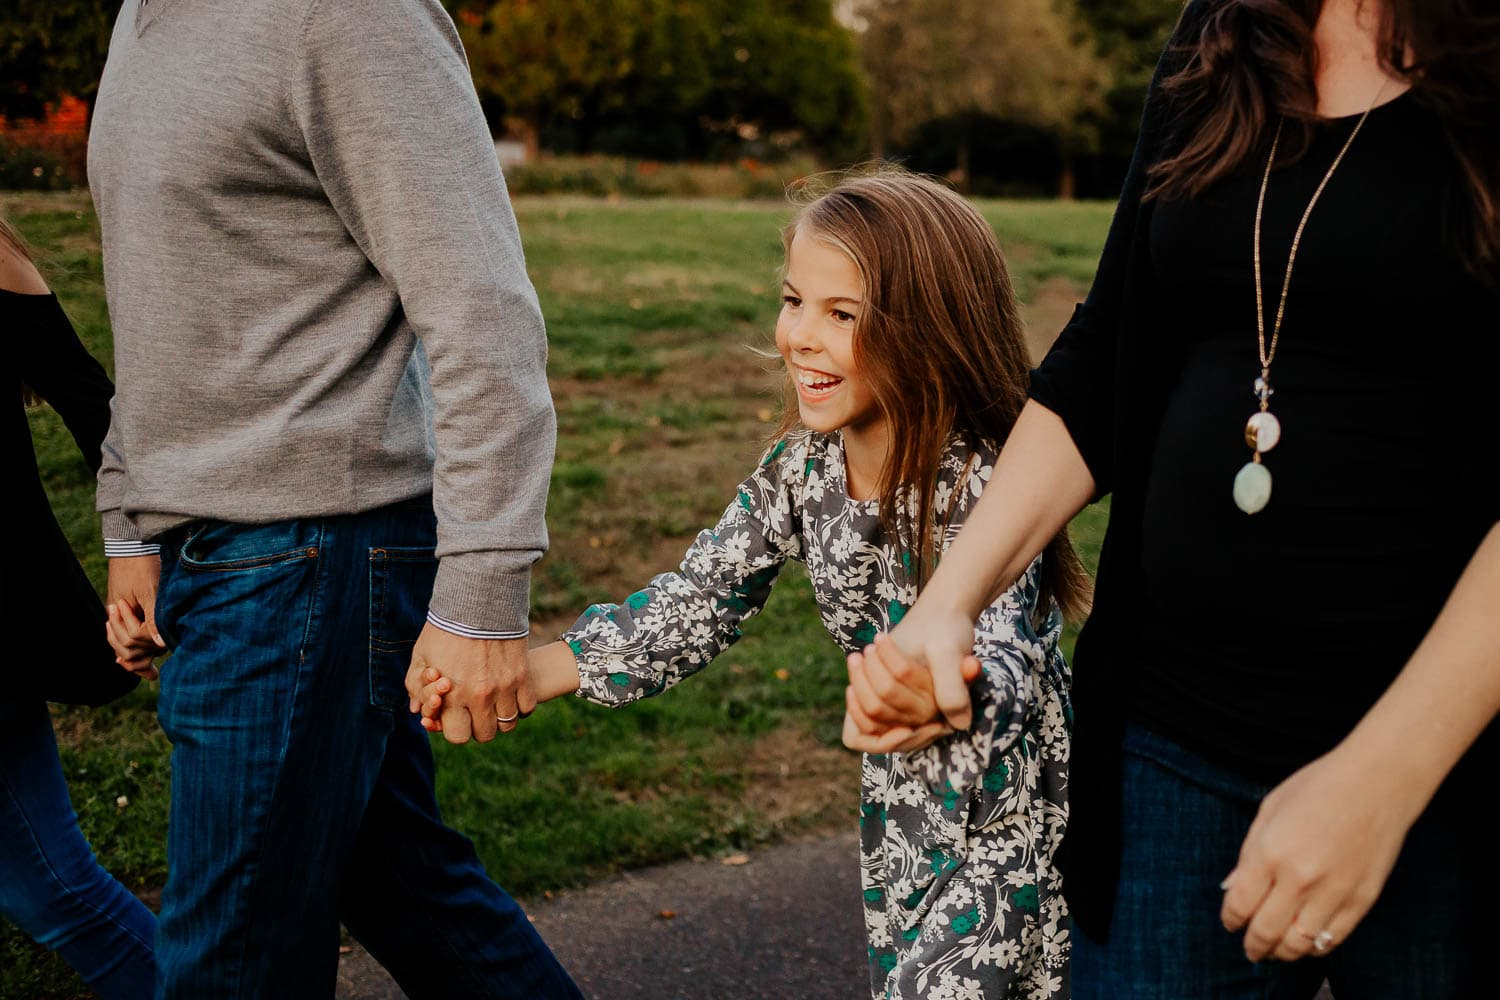 Family walking and holding hands in clackamas oregon